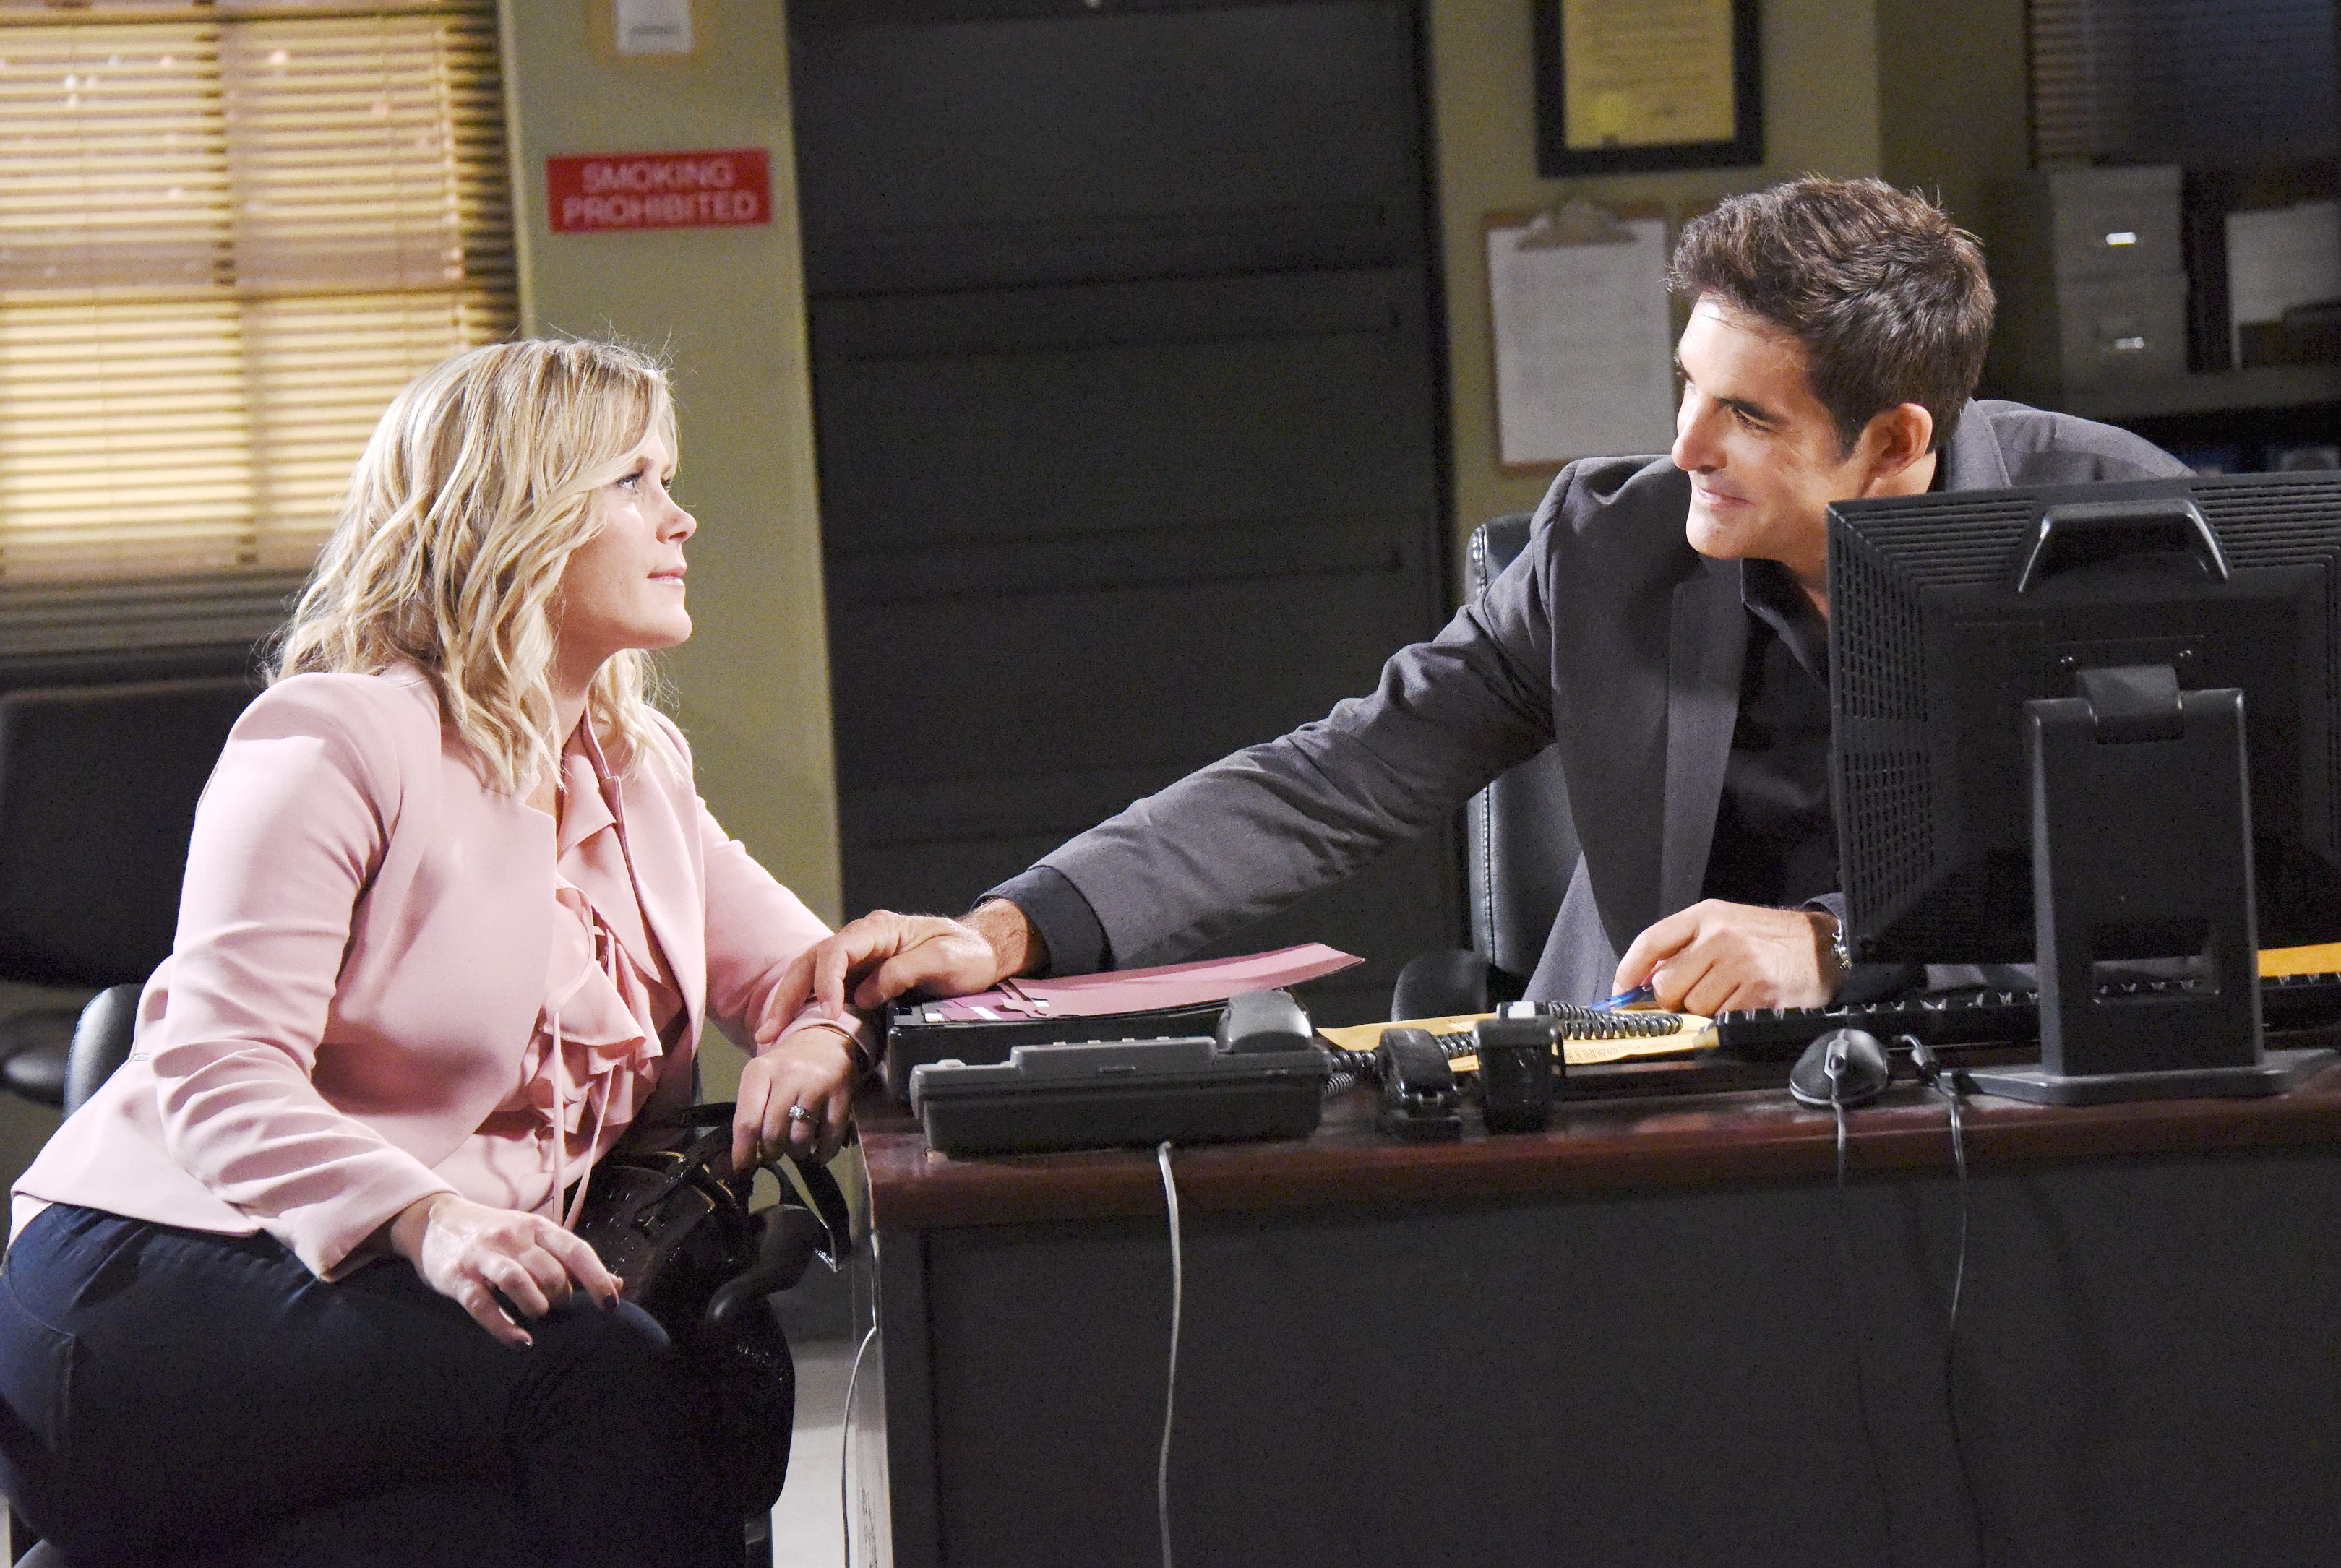 Days Of Our Lives Spoilers: Rafe and Sami seek comfort in one another.